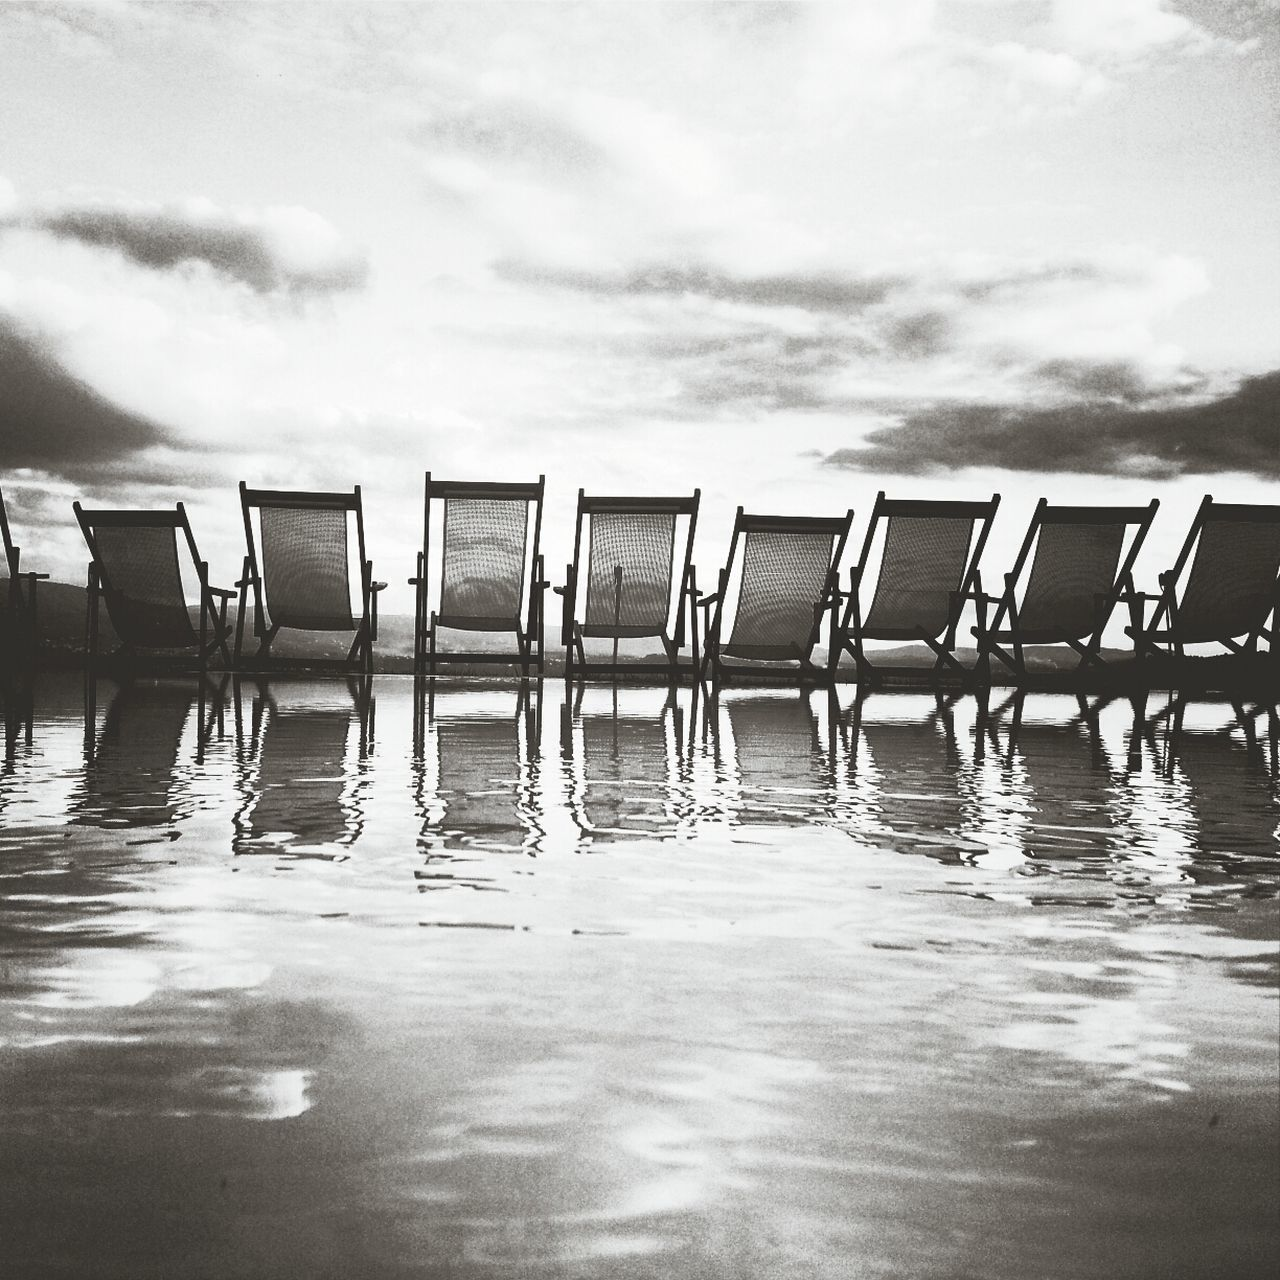 Reflection Of Chairs In A Pool